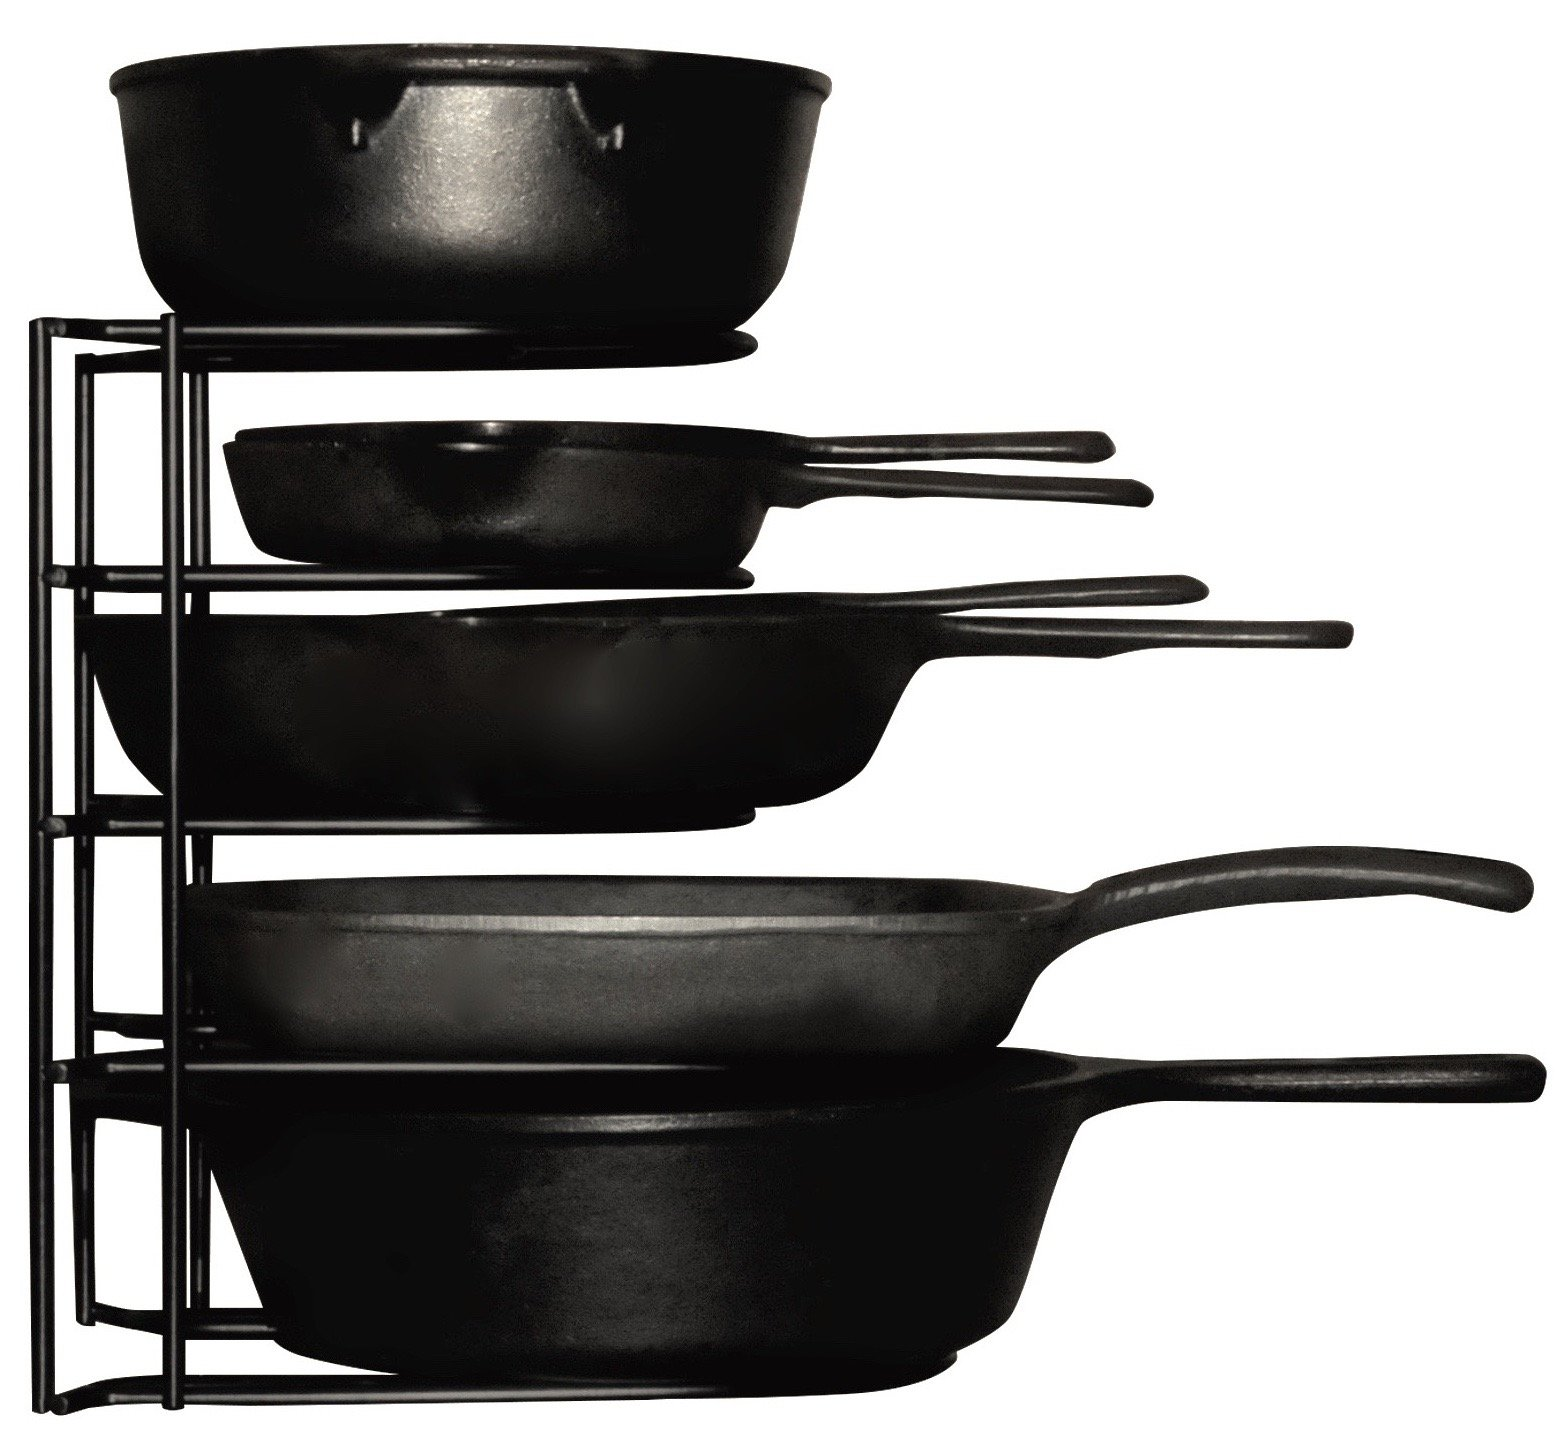 Extreme Matters Heavy Duty Pan Organizer - Bottom Tier 1 Inch Taller for Larger Pans - No Assembly Required - Black by Extreme Matters (Image #2)